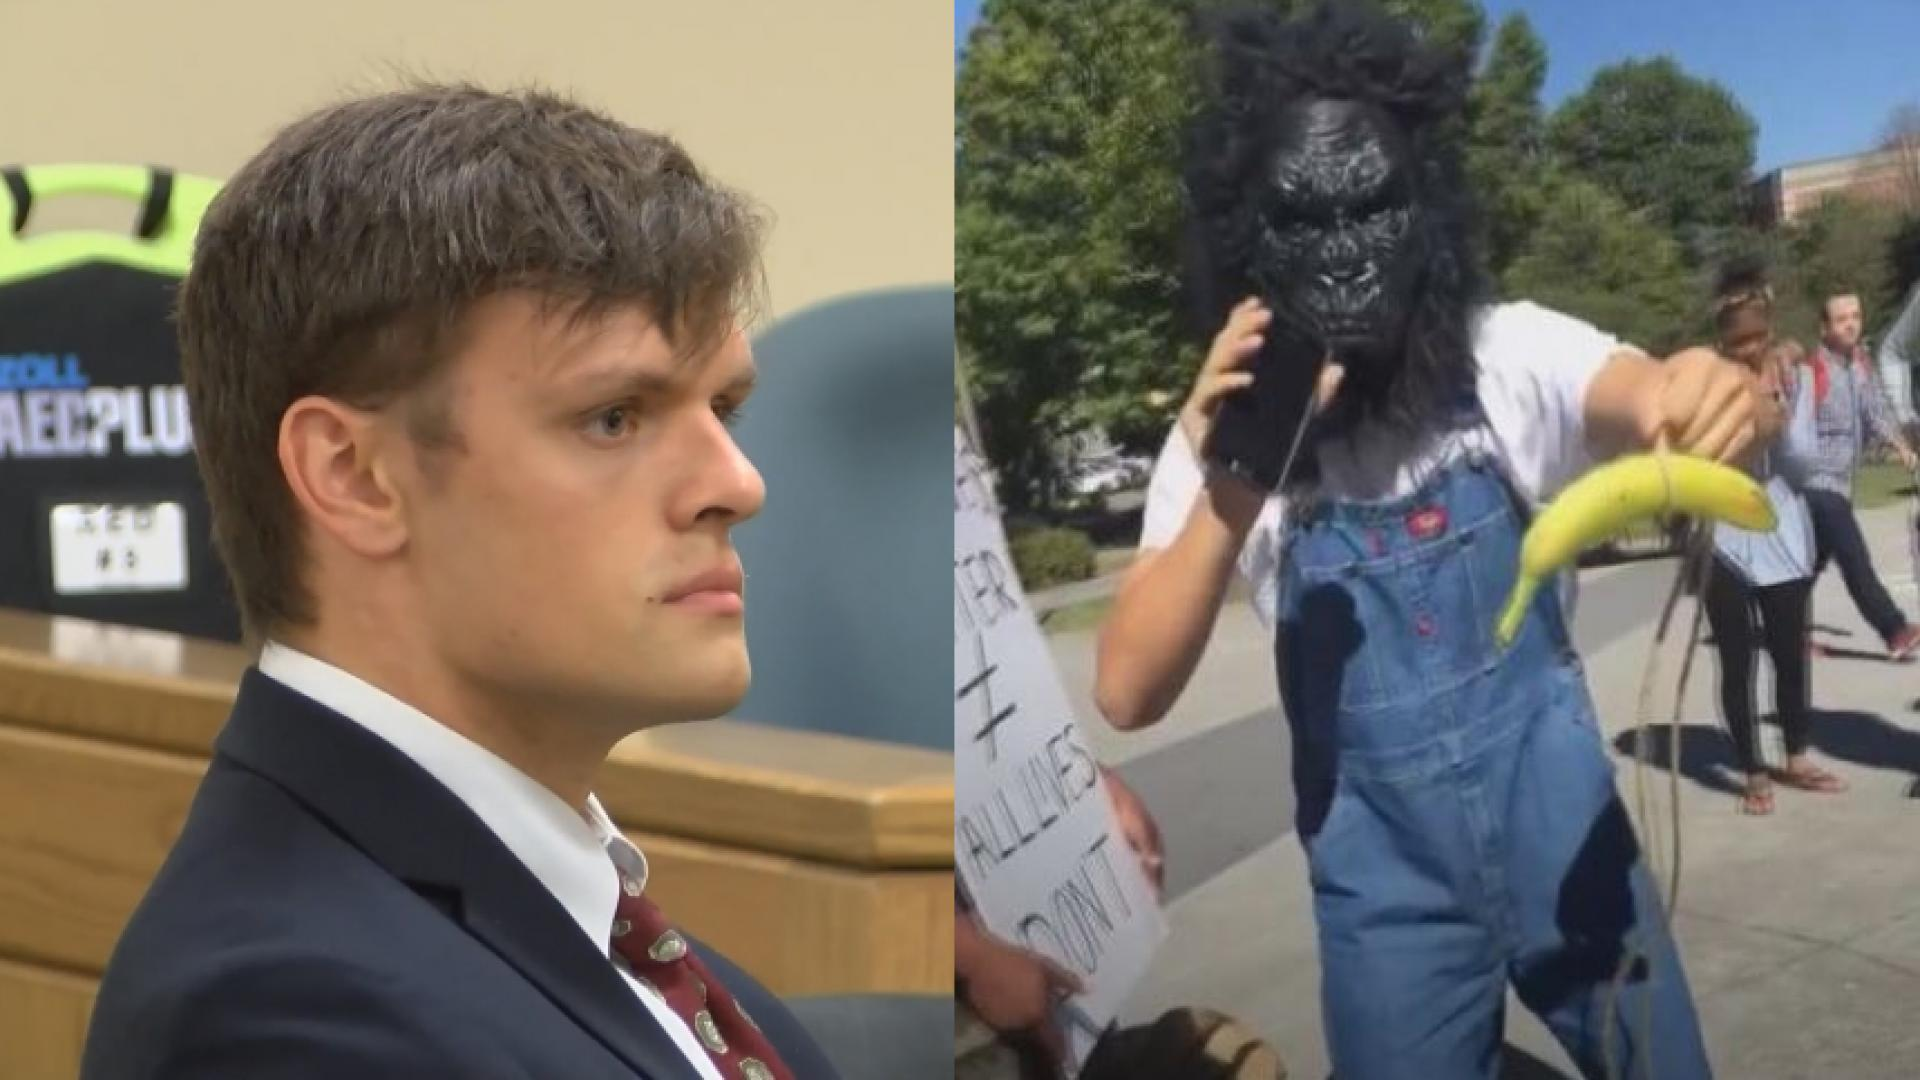 Student arrested for wearing gorilla mask to Black Lives Matter rally cleared of most charges